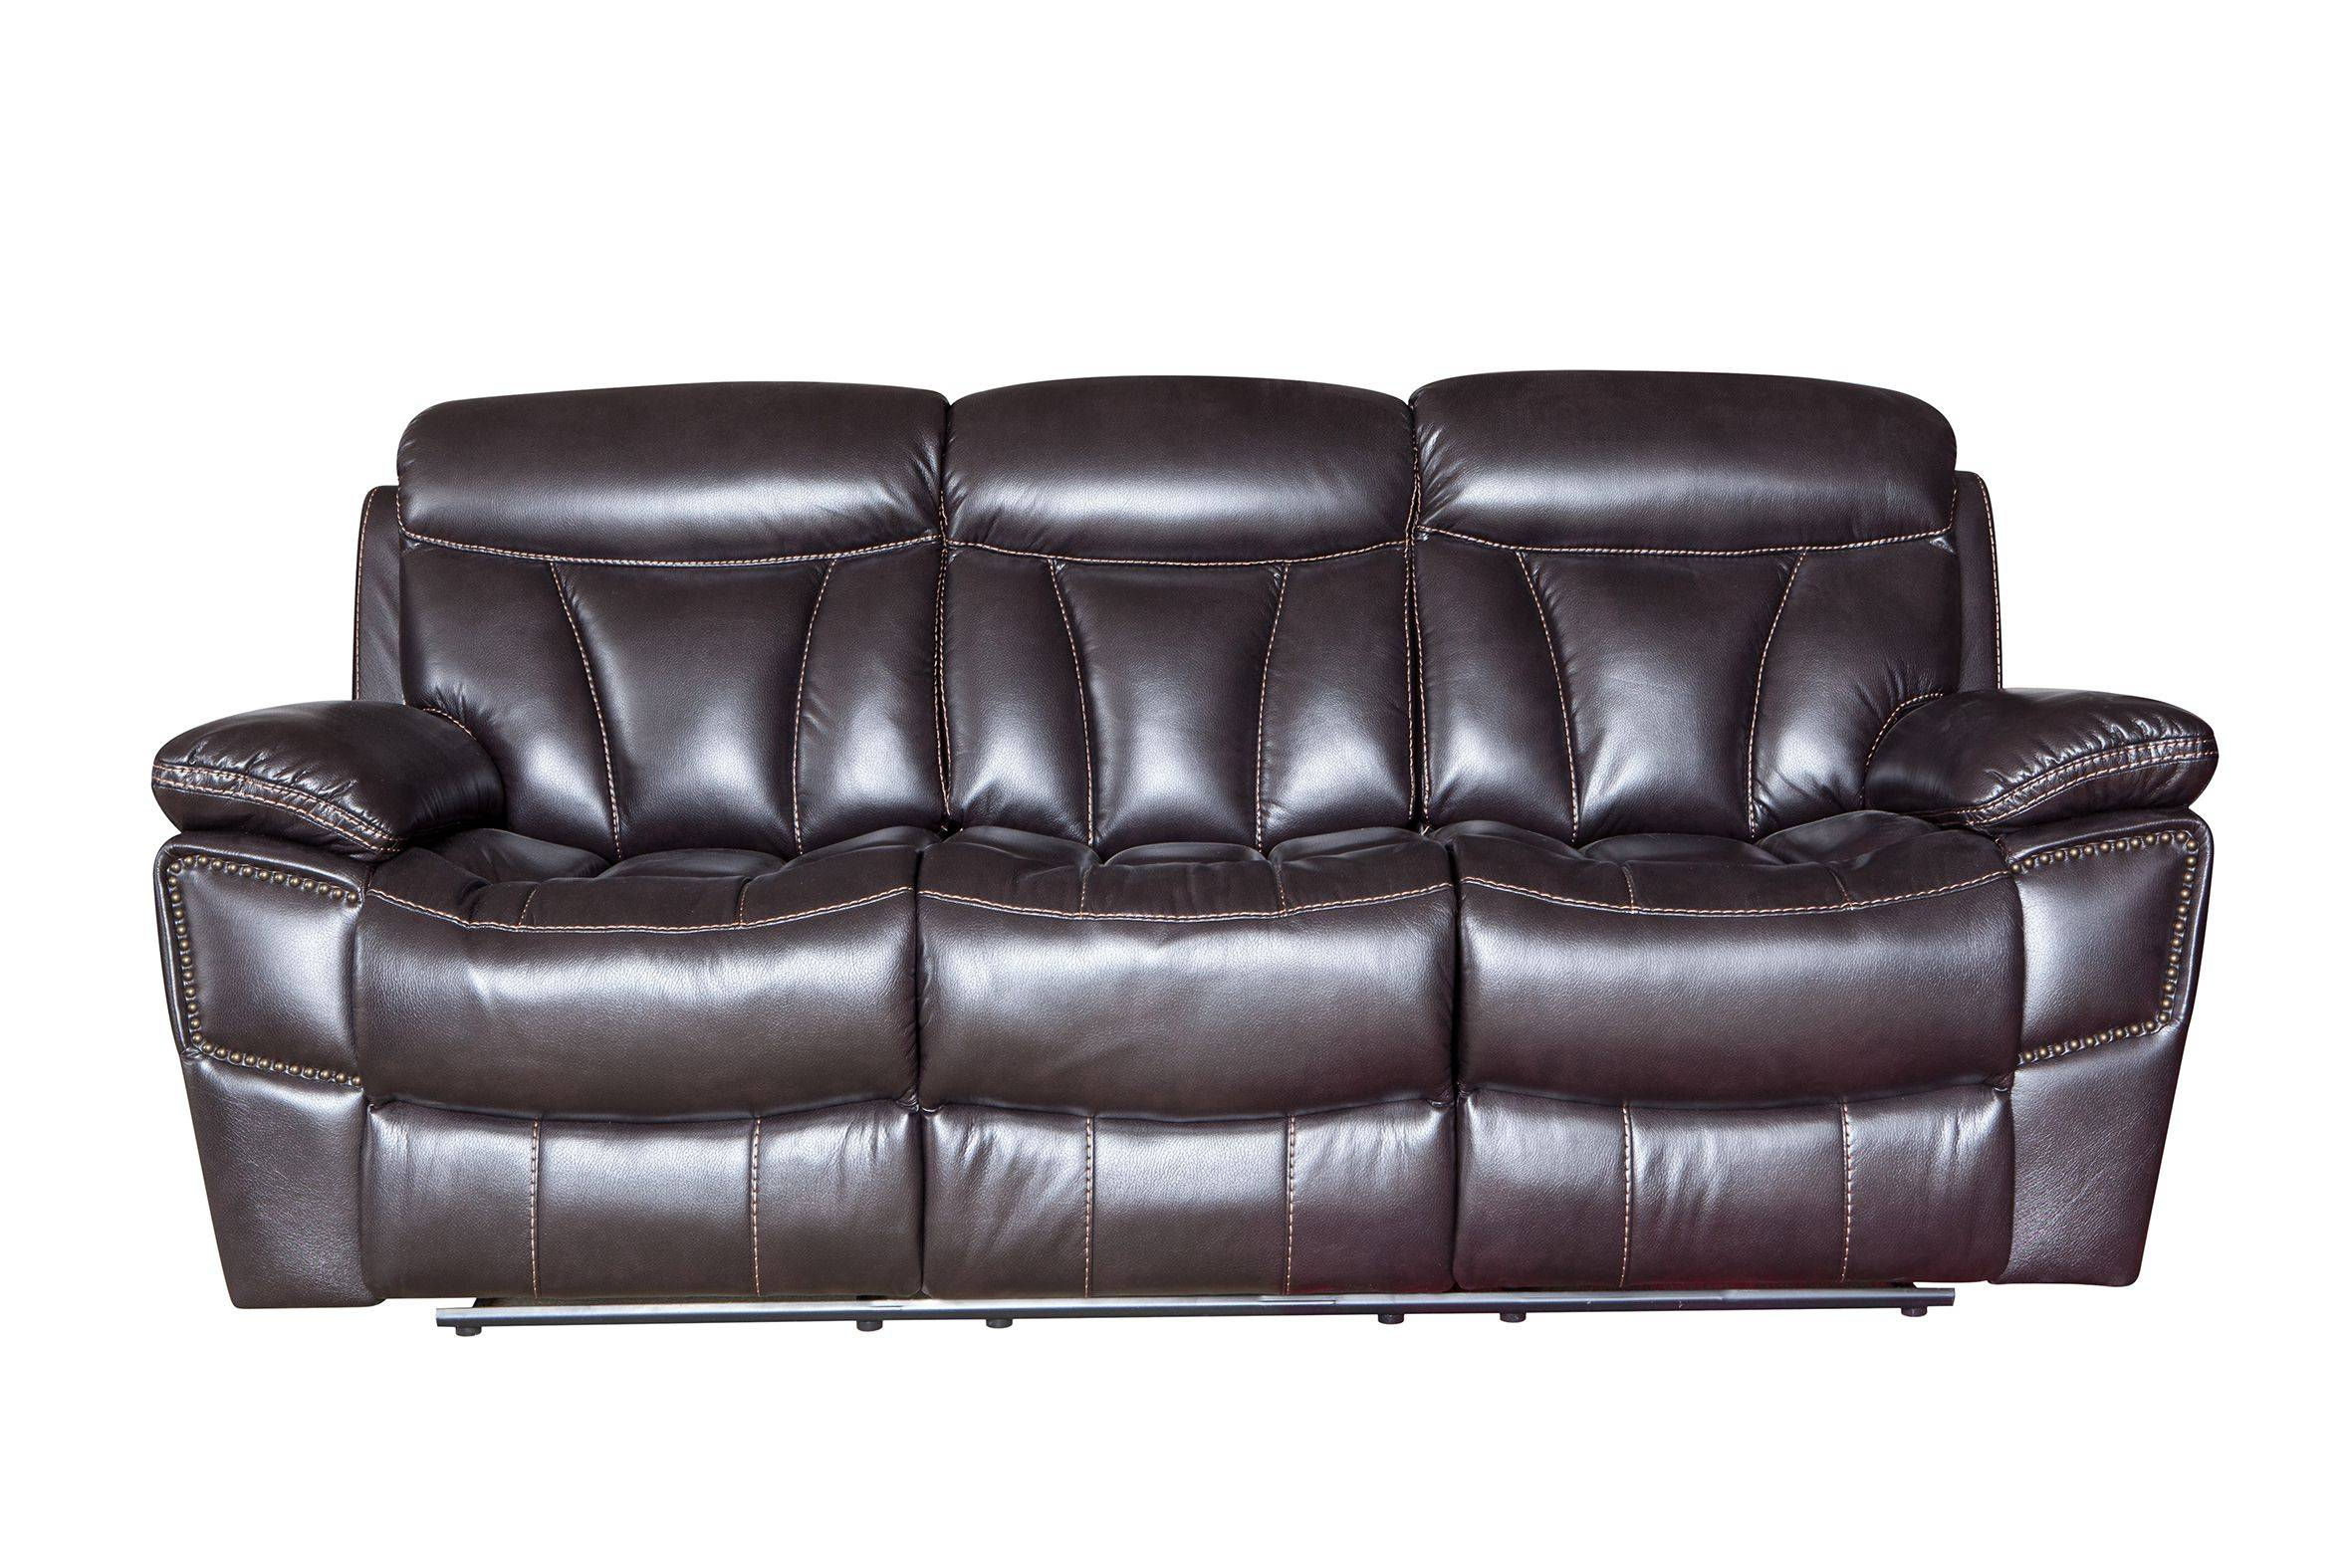 Good quality leather recliner sofa 3 2 1 modern for living room